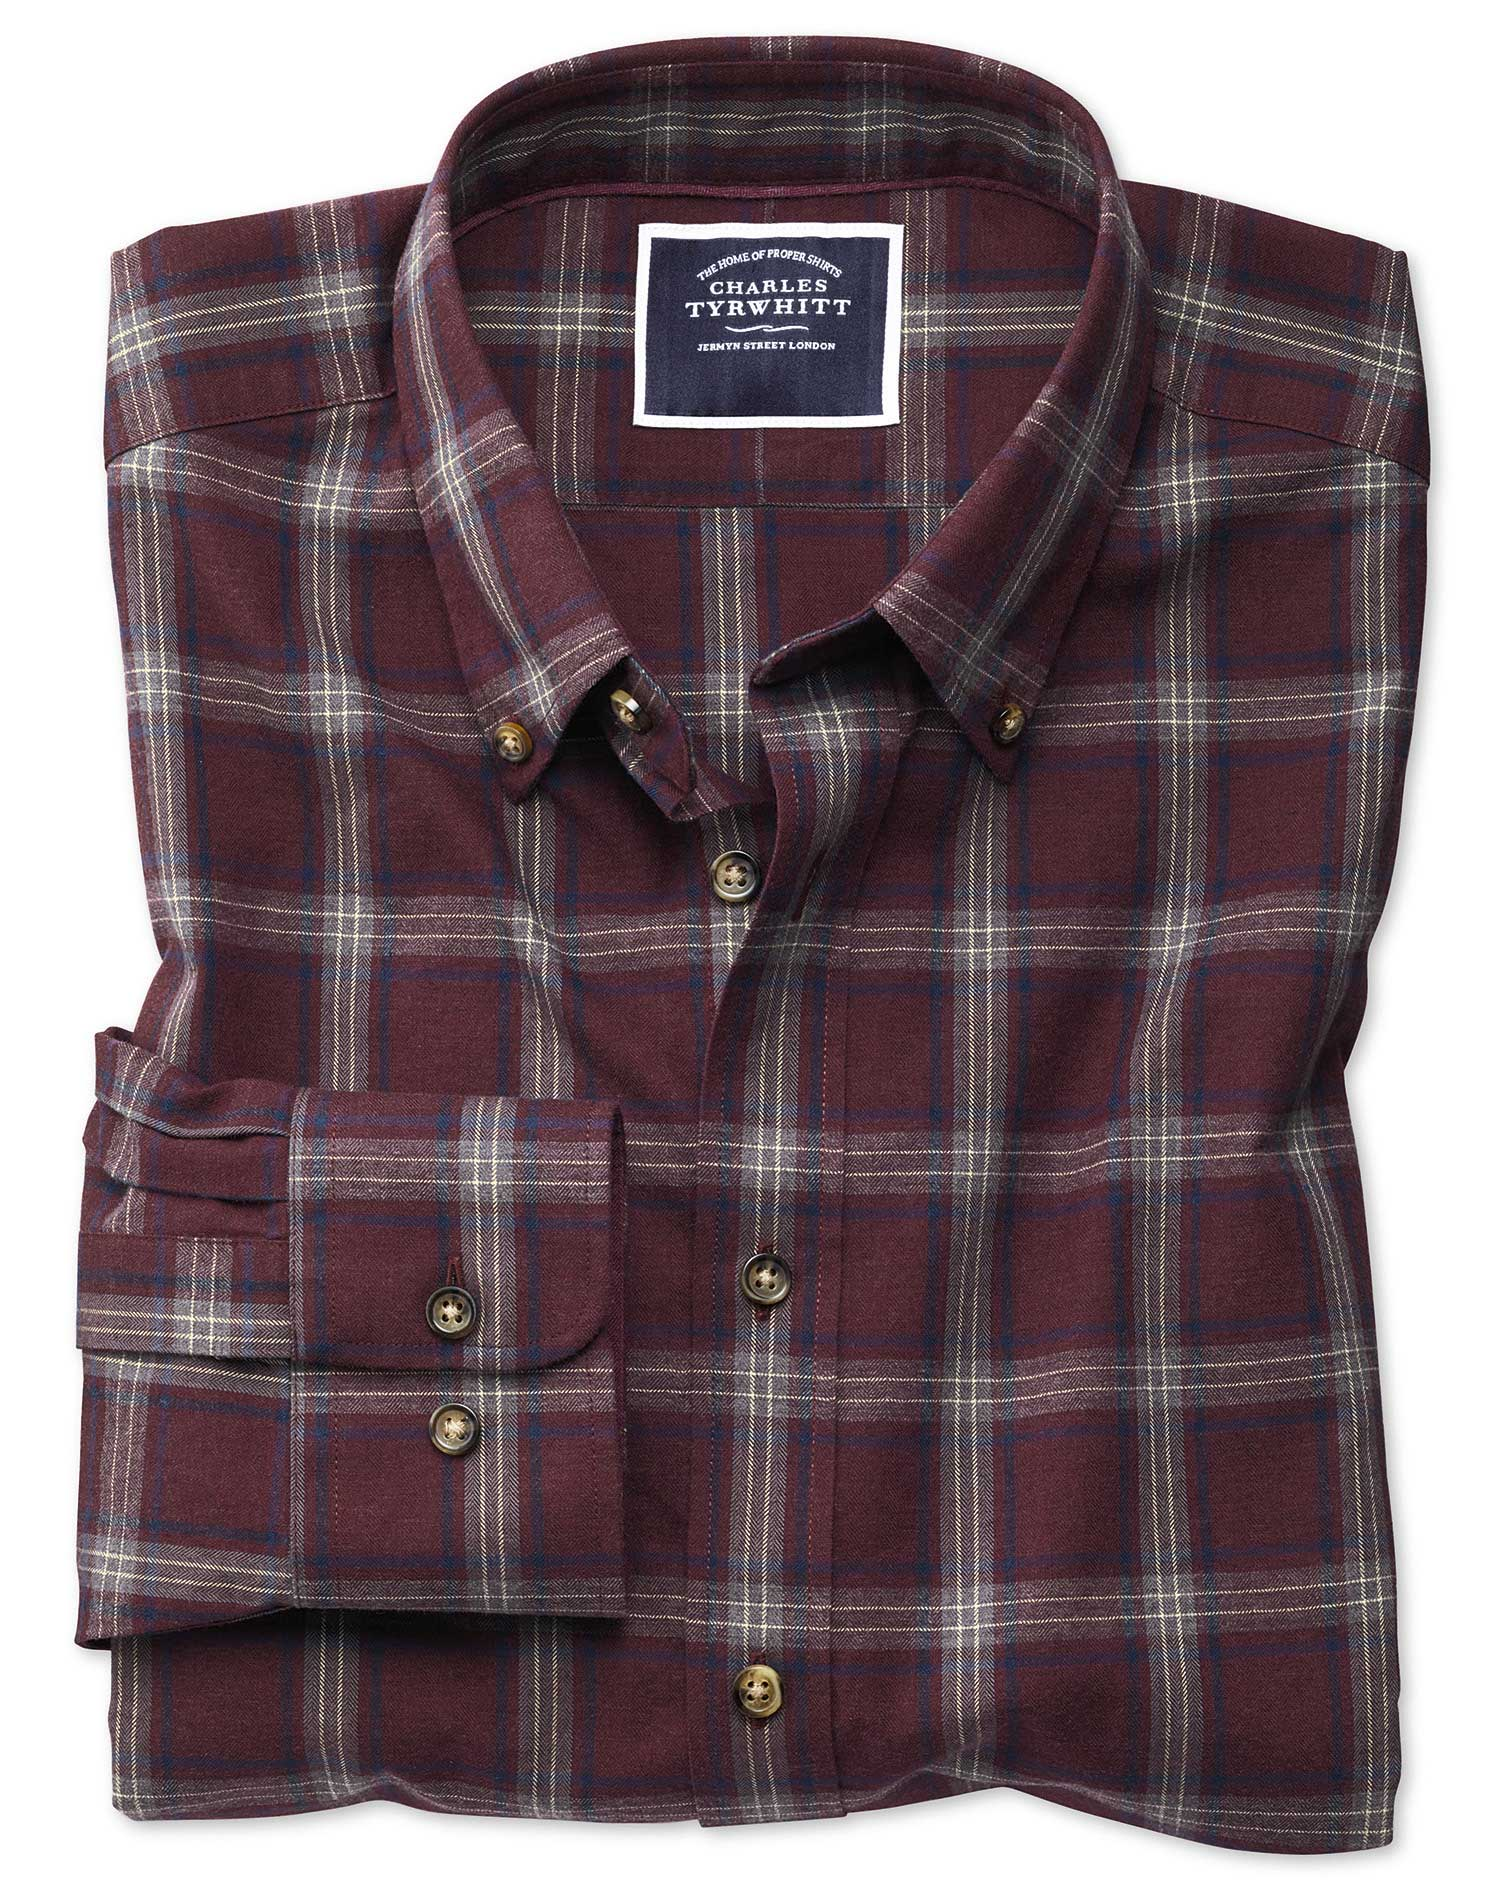 Classic Fit Burgundy and Blue Check Herringbone Melange Cotton Shirt Single Cuff Size Large by Charles Tyrwhitt from Charles Tyrwhitt